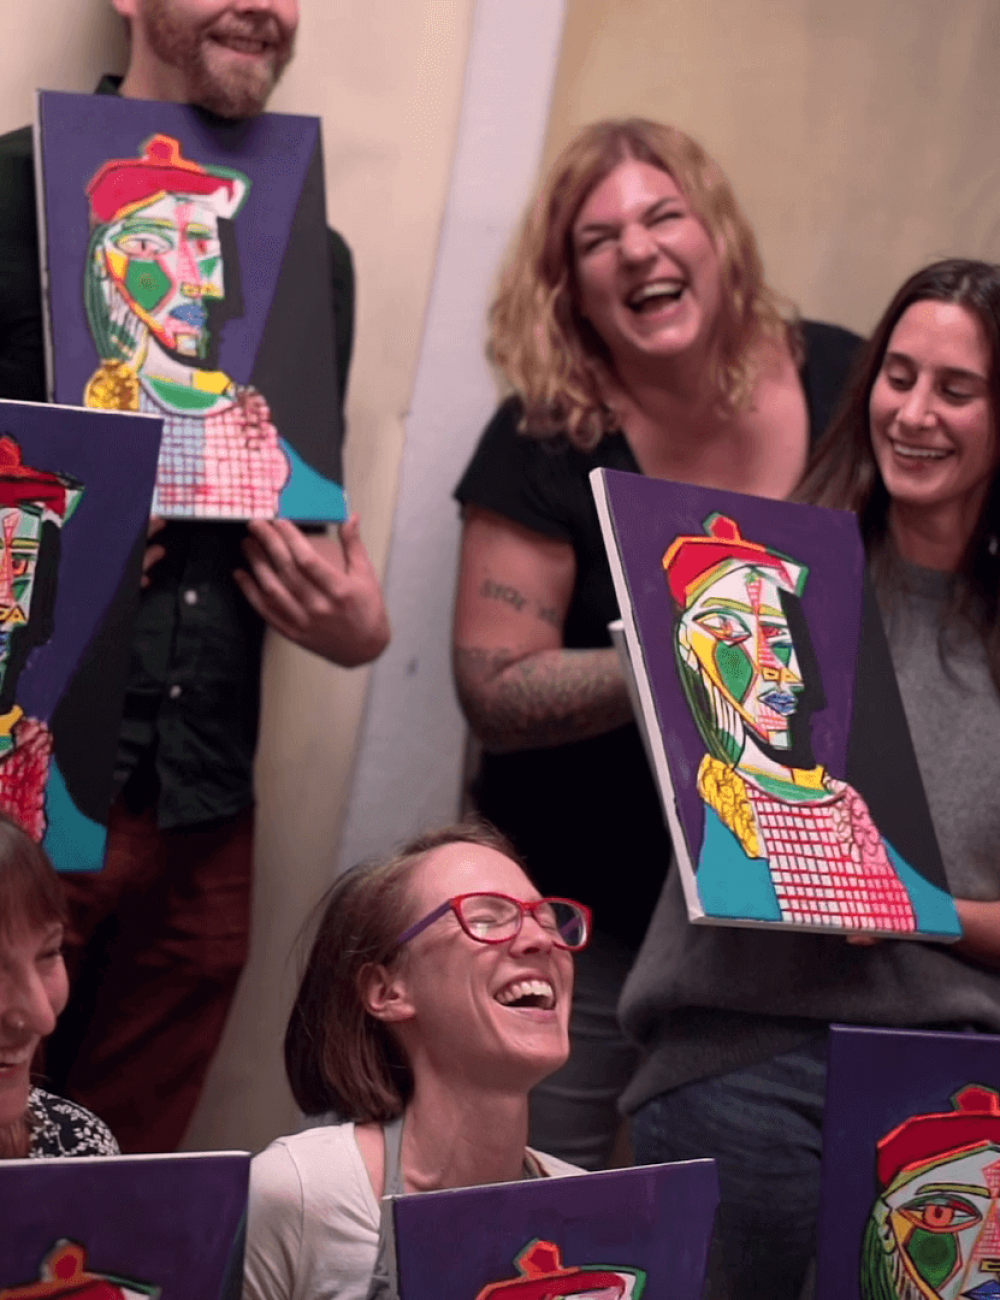 painting and meeting new faces at Paint and sip events